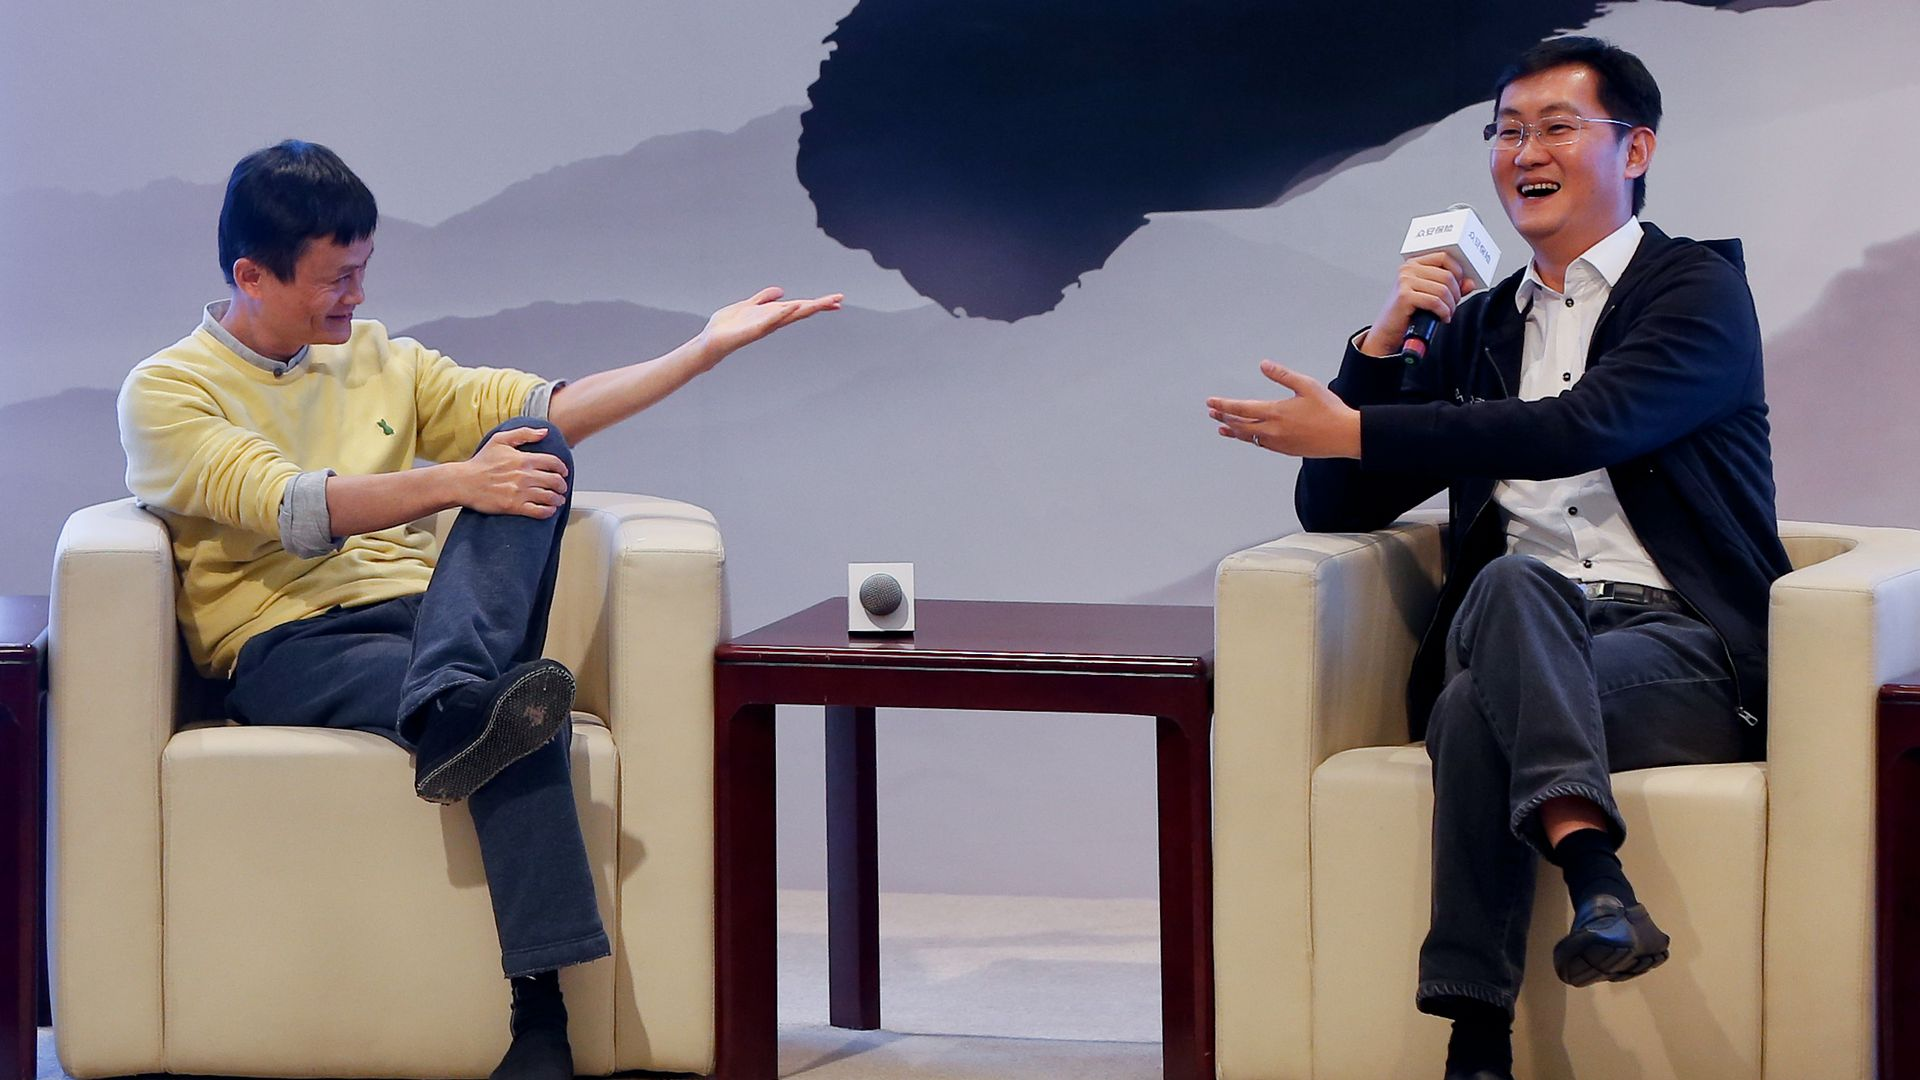 Jack Ma and Pony Ma speaking at a conference